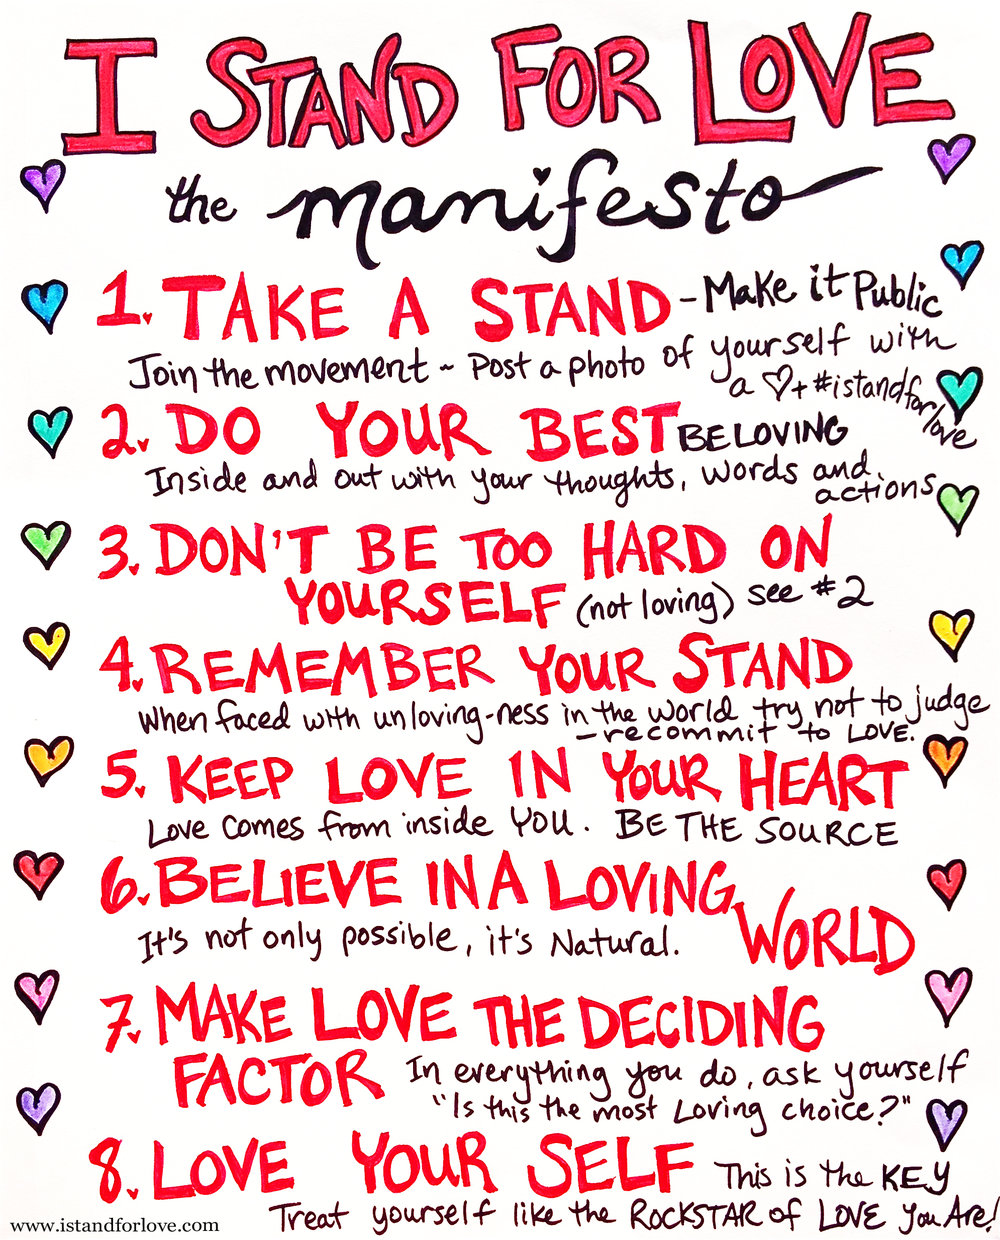 I Stand For Love Manifesto new.jpg